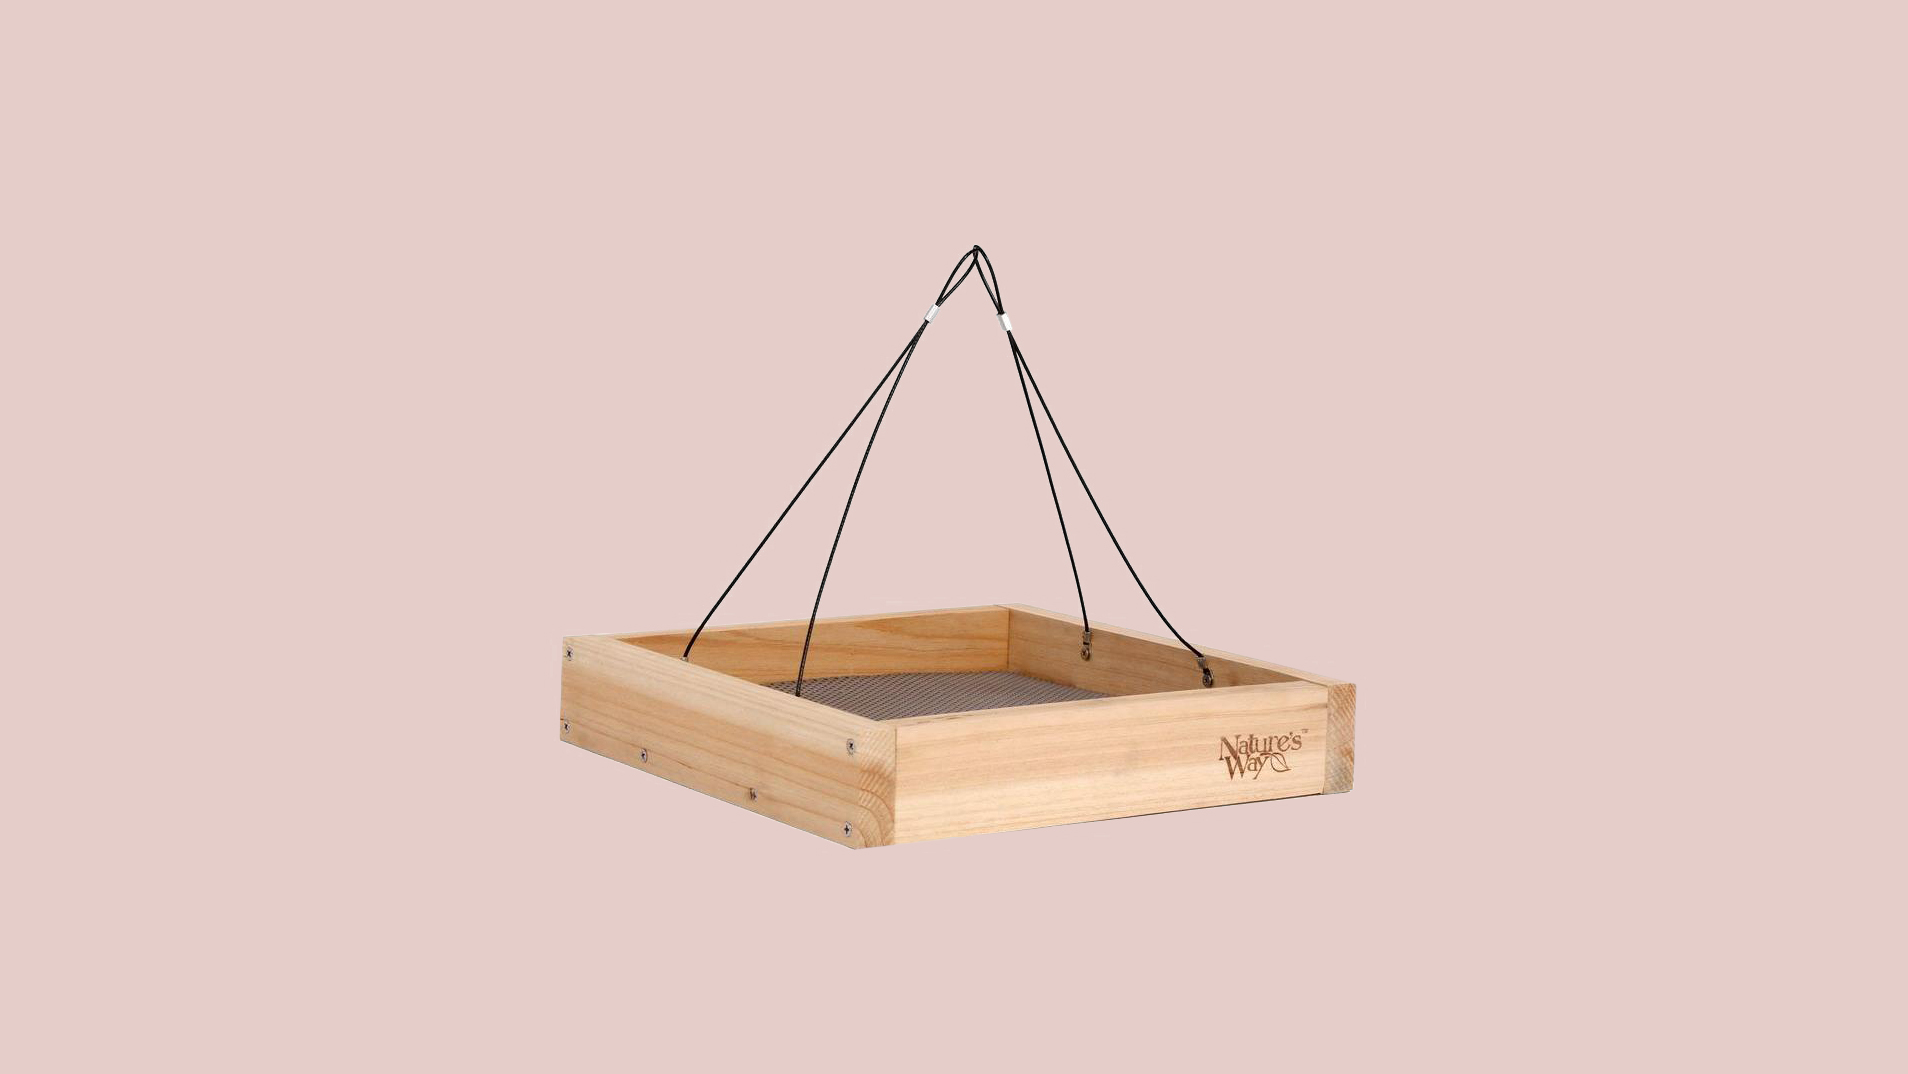 natures way tray bird feeder